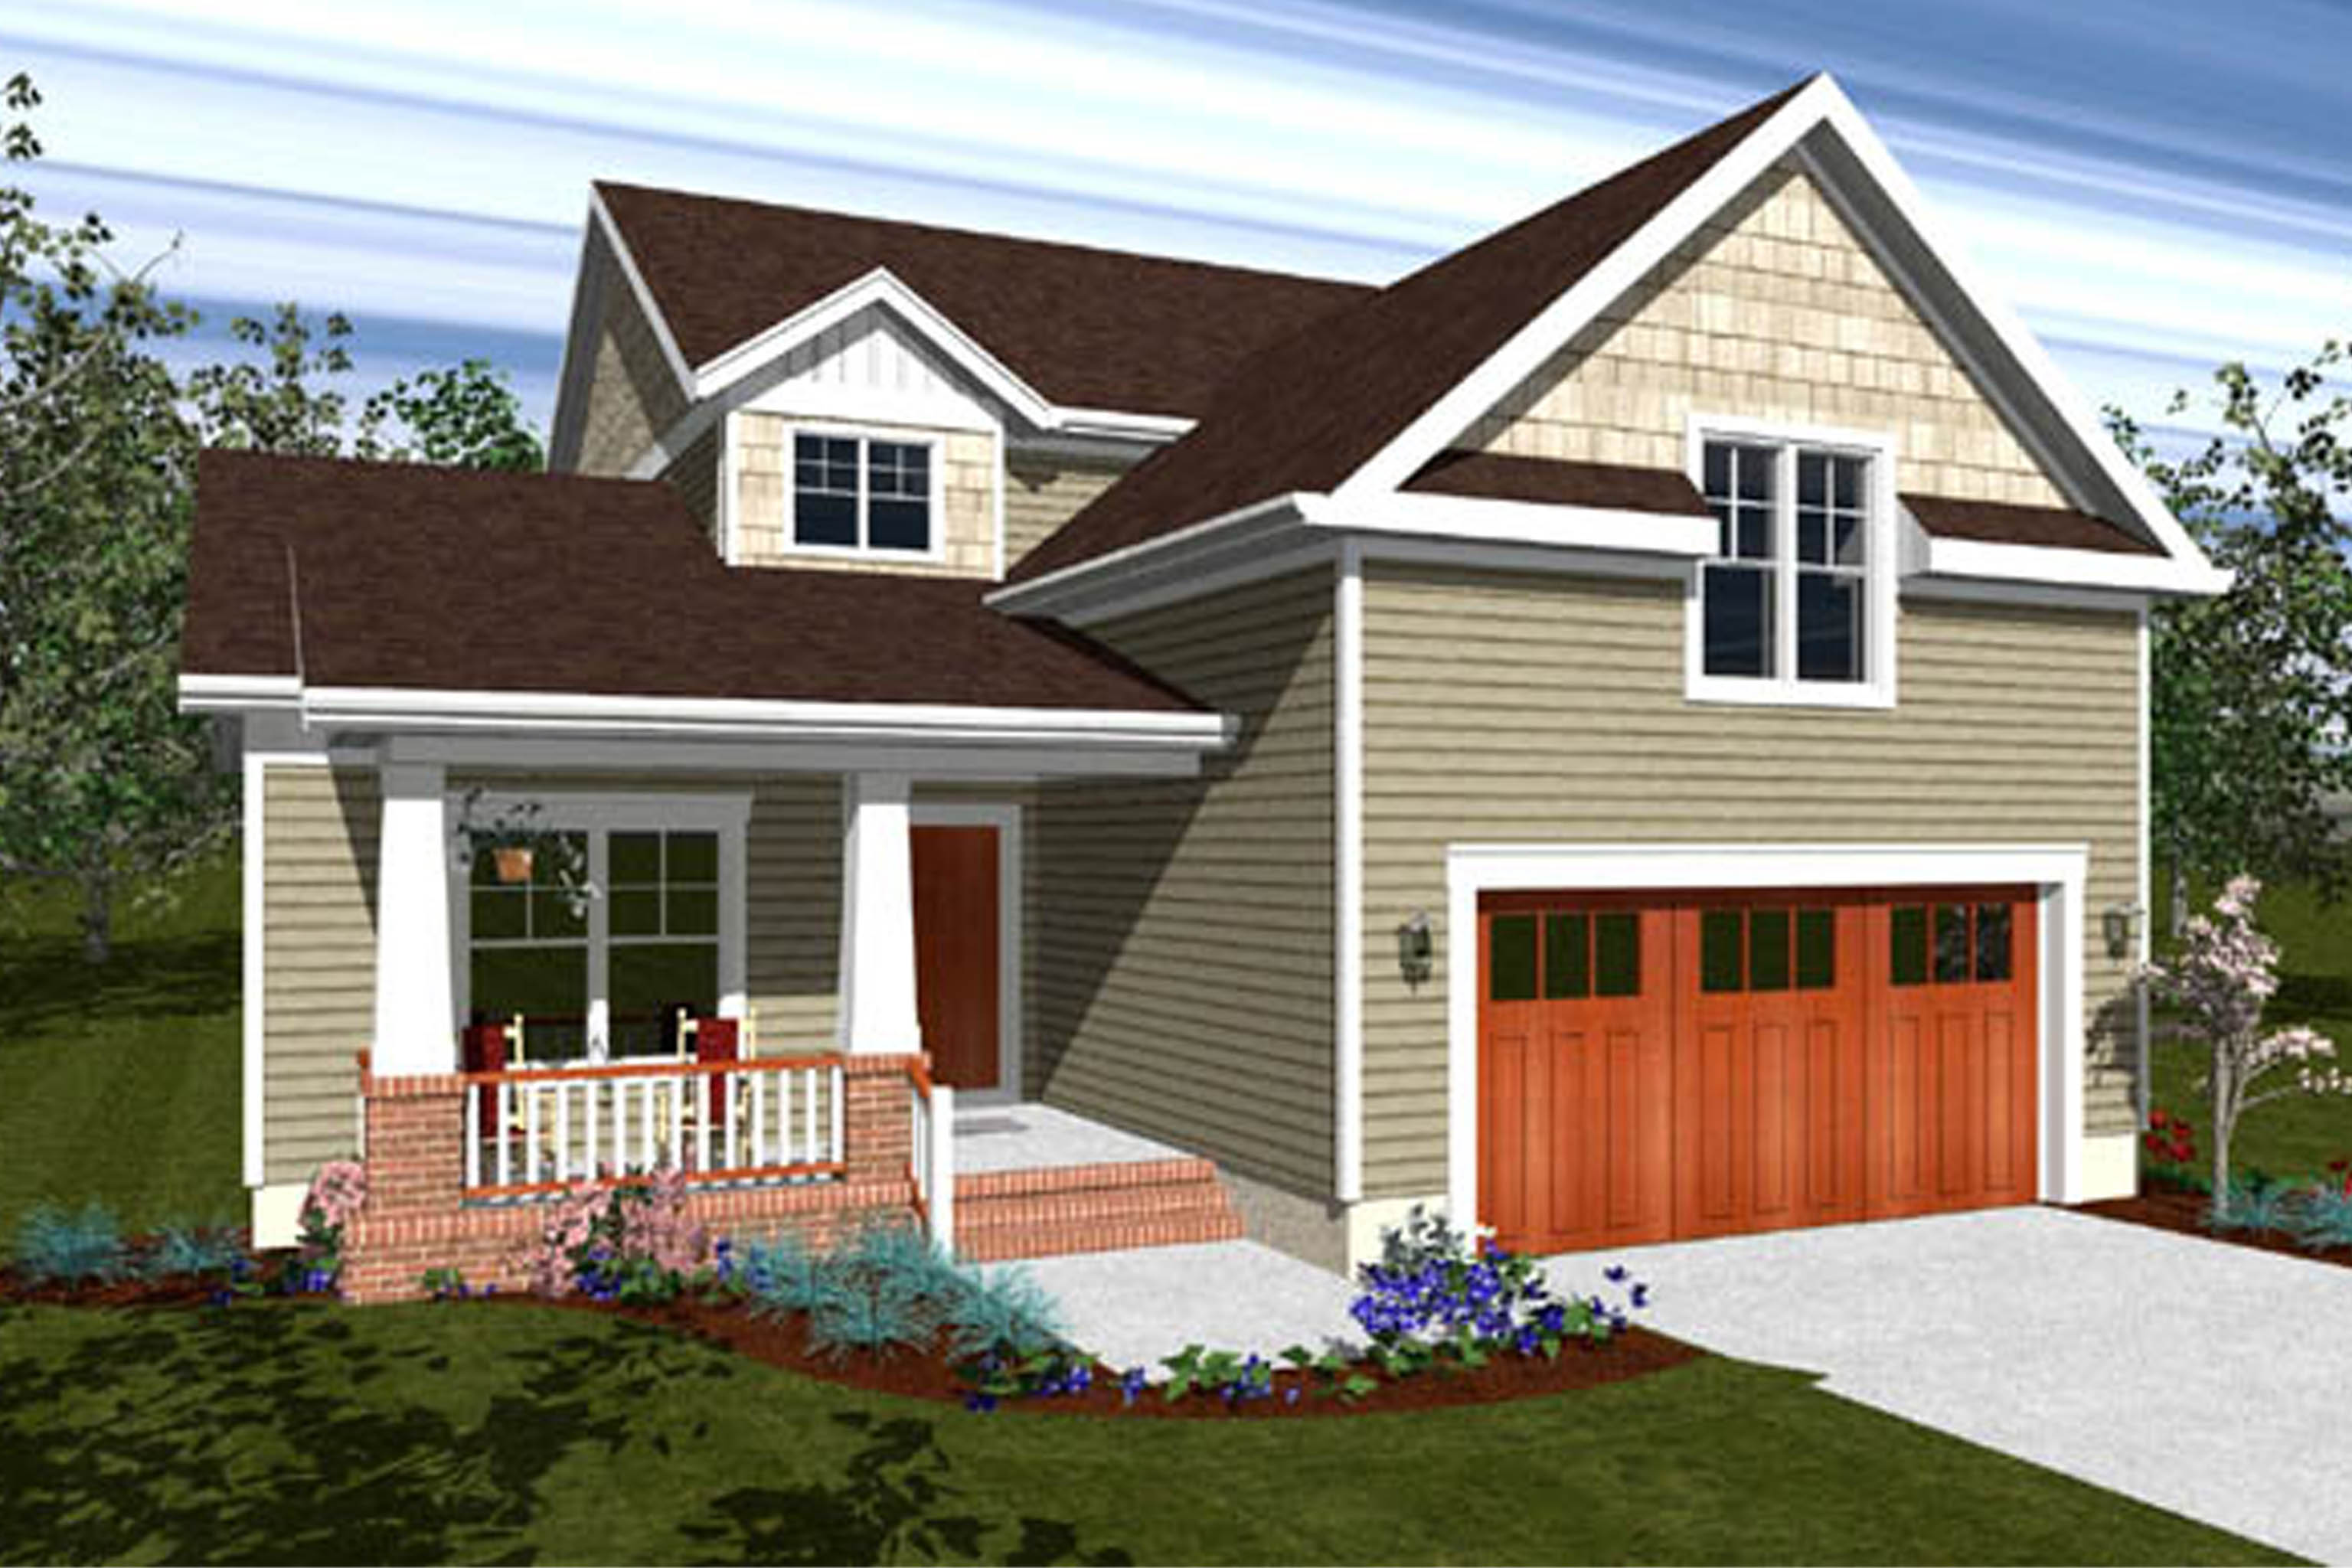 House Plan 171 - Stickley